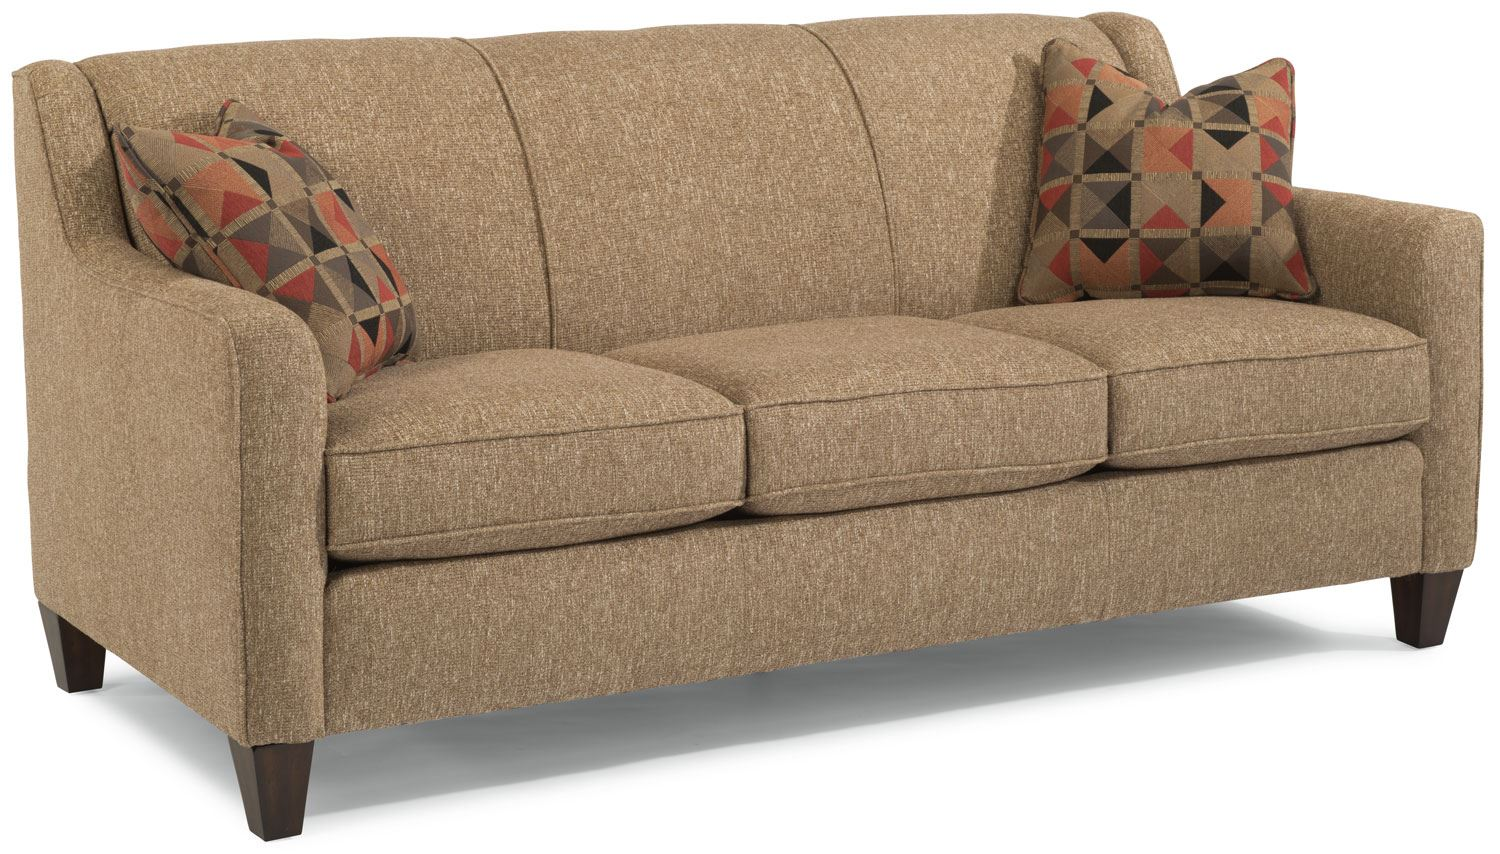 flexsteel sofas holly sofa - flexsteel ... VJBCFMD